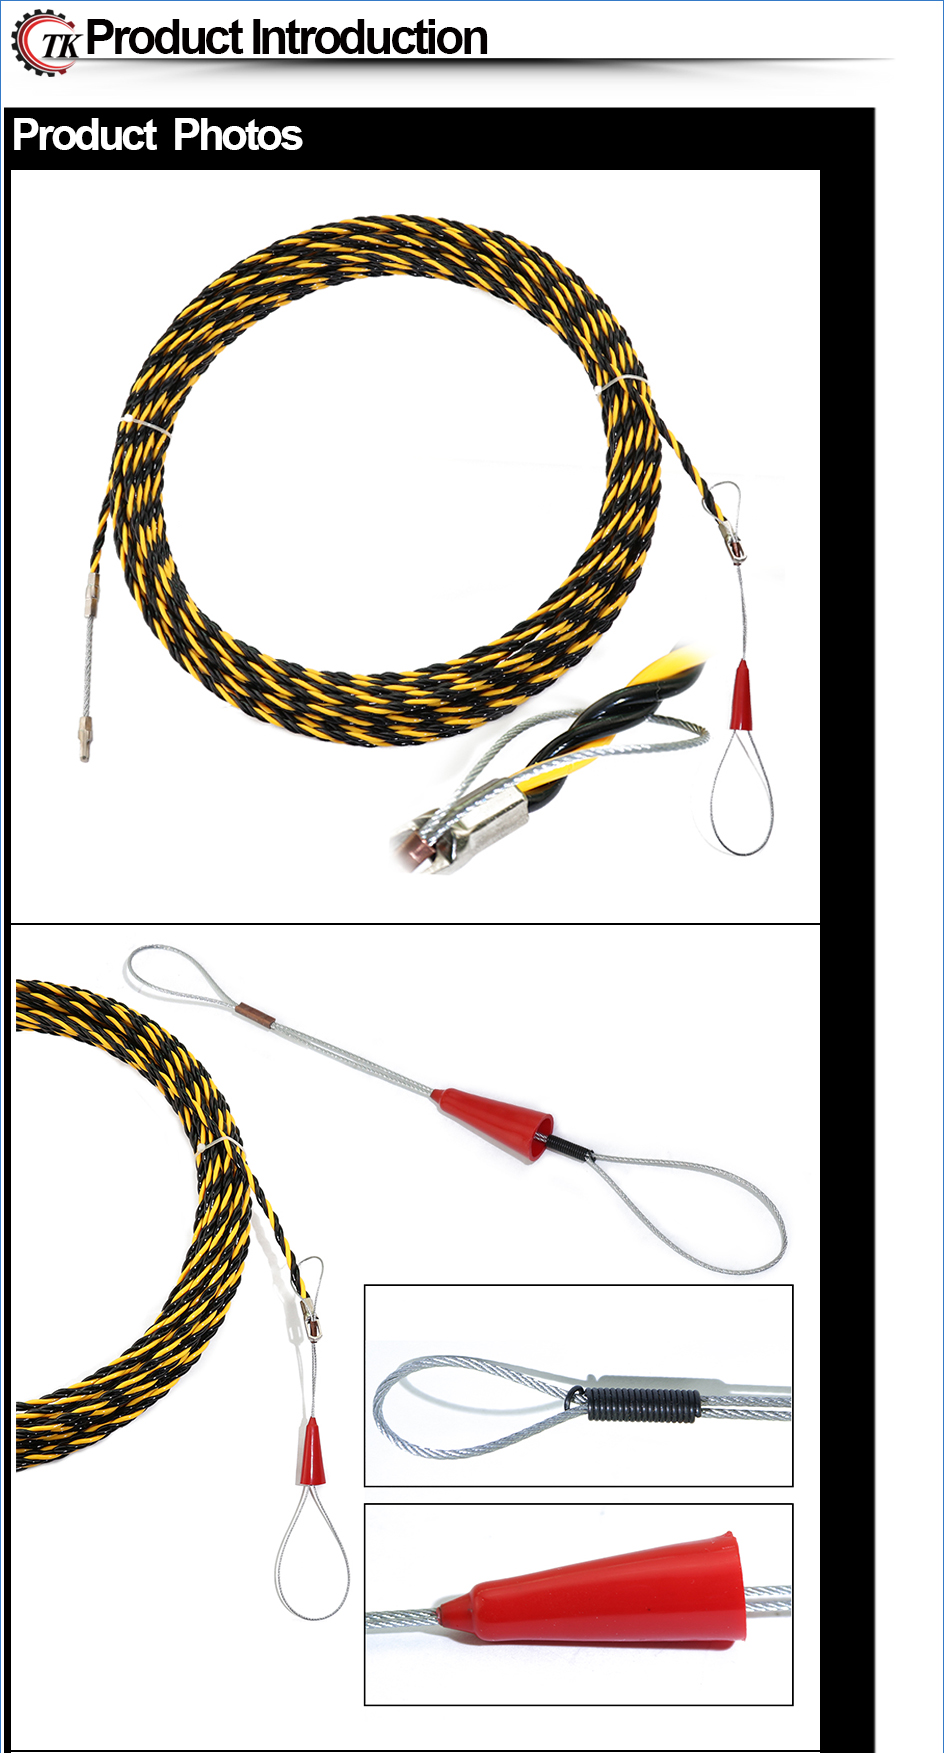 New 65mm20m Nylon Fish Tape Electric Cable Push Puller Snake Electrical Wiring Conduit Item Color Displayed In Photos May Be Showing Slightly Different On Your Computer Monitor Since Monitors Are Not Calibrated Same